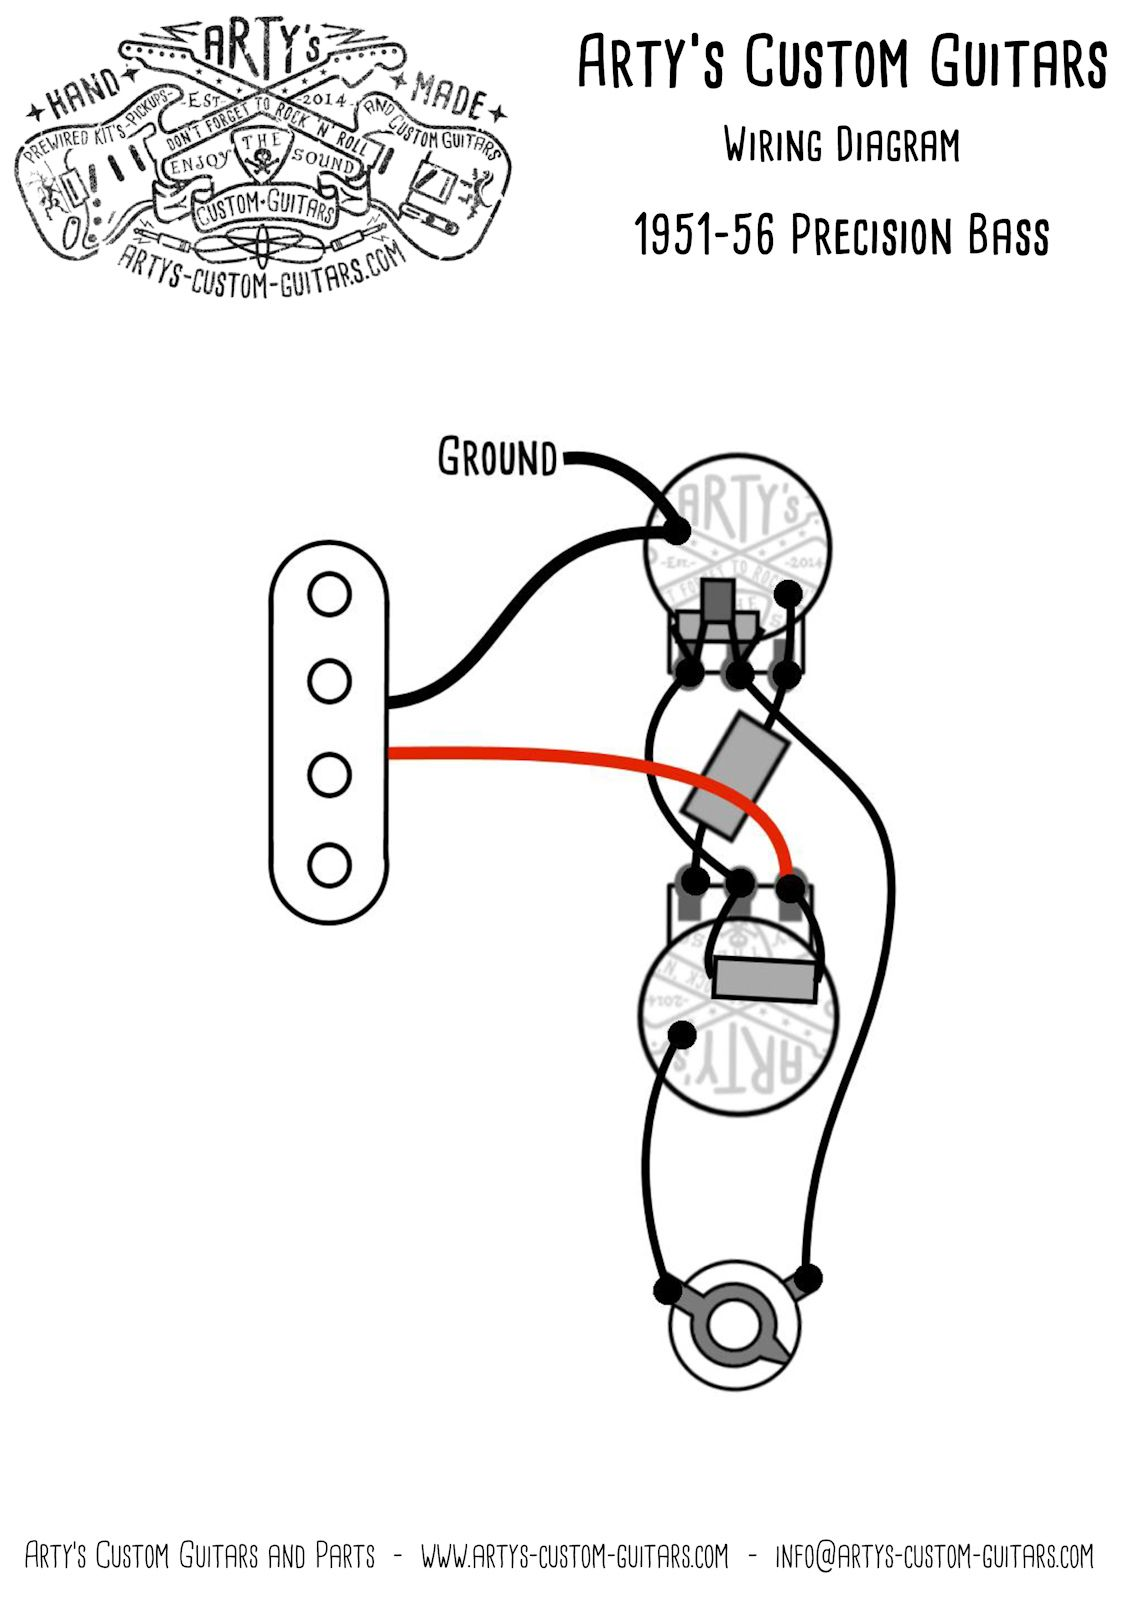 269 Stratocaster Wiring Diagram Square | Wiring Resources on john deere 455 wiring-diagram, john deere lx255 wiring-diagram, gator tx wiring-diagram, john deere gator horns, john deere m wiring-diagram, john deere lx277 wiring-diagram, john deere stx38 wiring-diagram, john deere lx173 wiring-diagram, john deere 425 wiring-diagram, john deere l125 wiring-diagram, john deere 235 wiring-diagram, john deere la105 wiring-diagram, john deere hpx wiring-diagram, john deere 155c wiring-diagram, john deere z225 wiring-diagram, john deere gt262 wiring-diagram, john deere 345 wiring-diagram, john deere 111h wiring-diagram, john deere gator electrical problems, john deere m665 wiring-diagram,